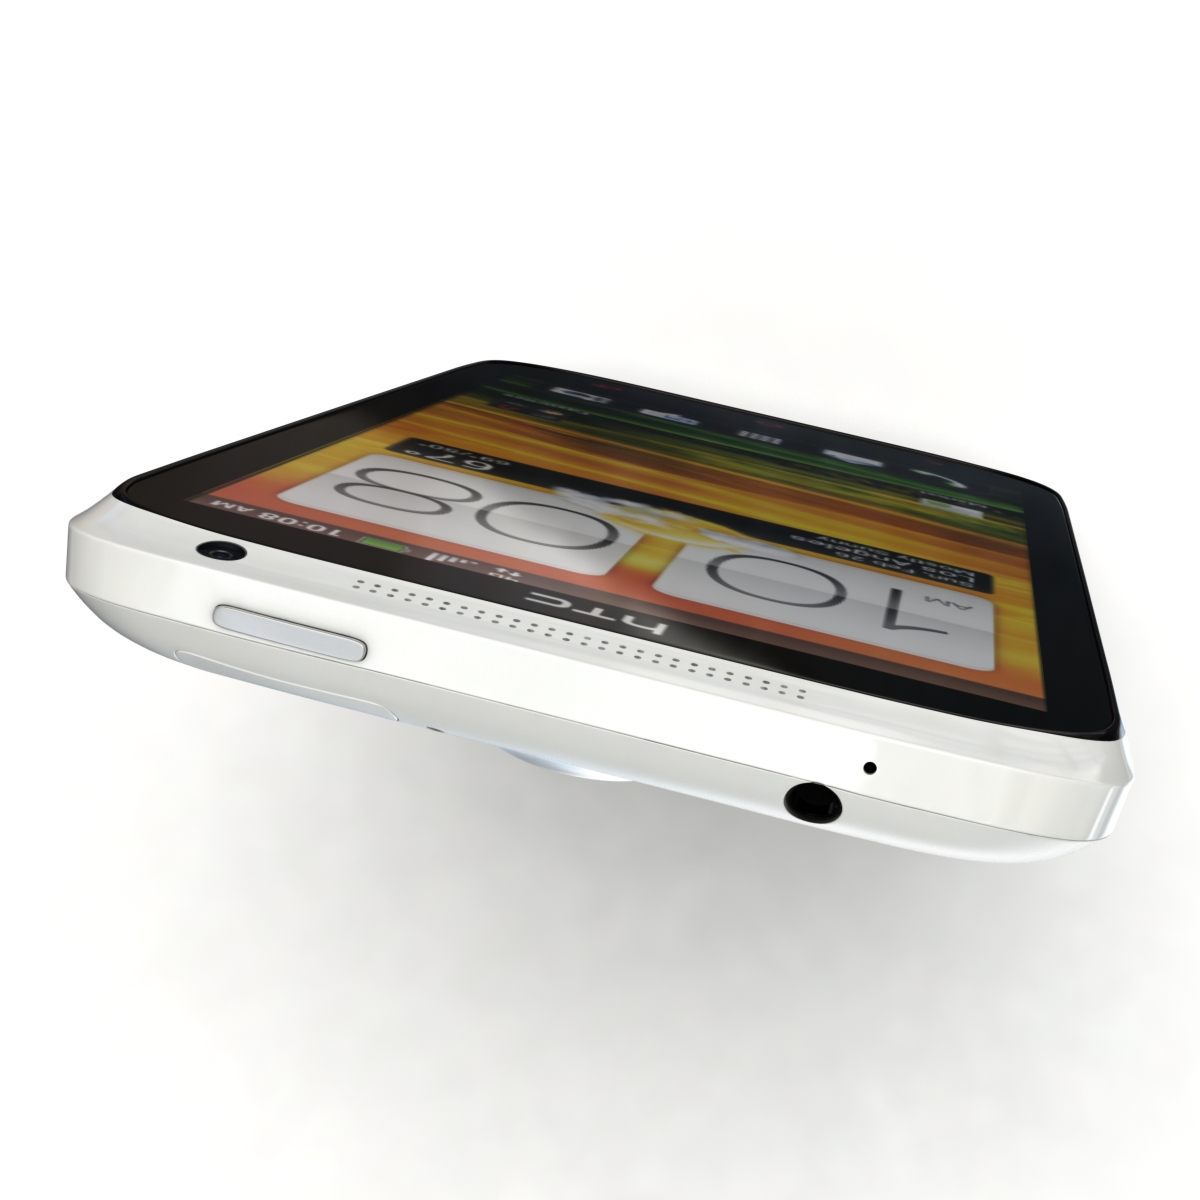 htc one x+ black and white 3d model 3ds max fbx c4d lwo obj 151472